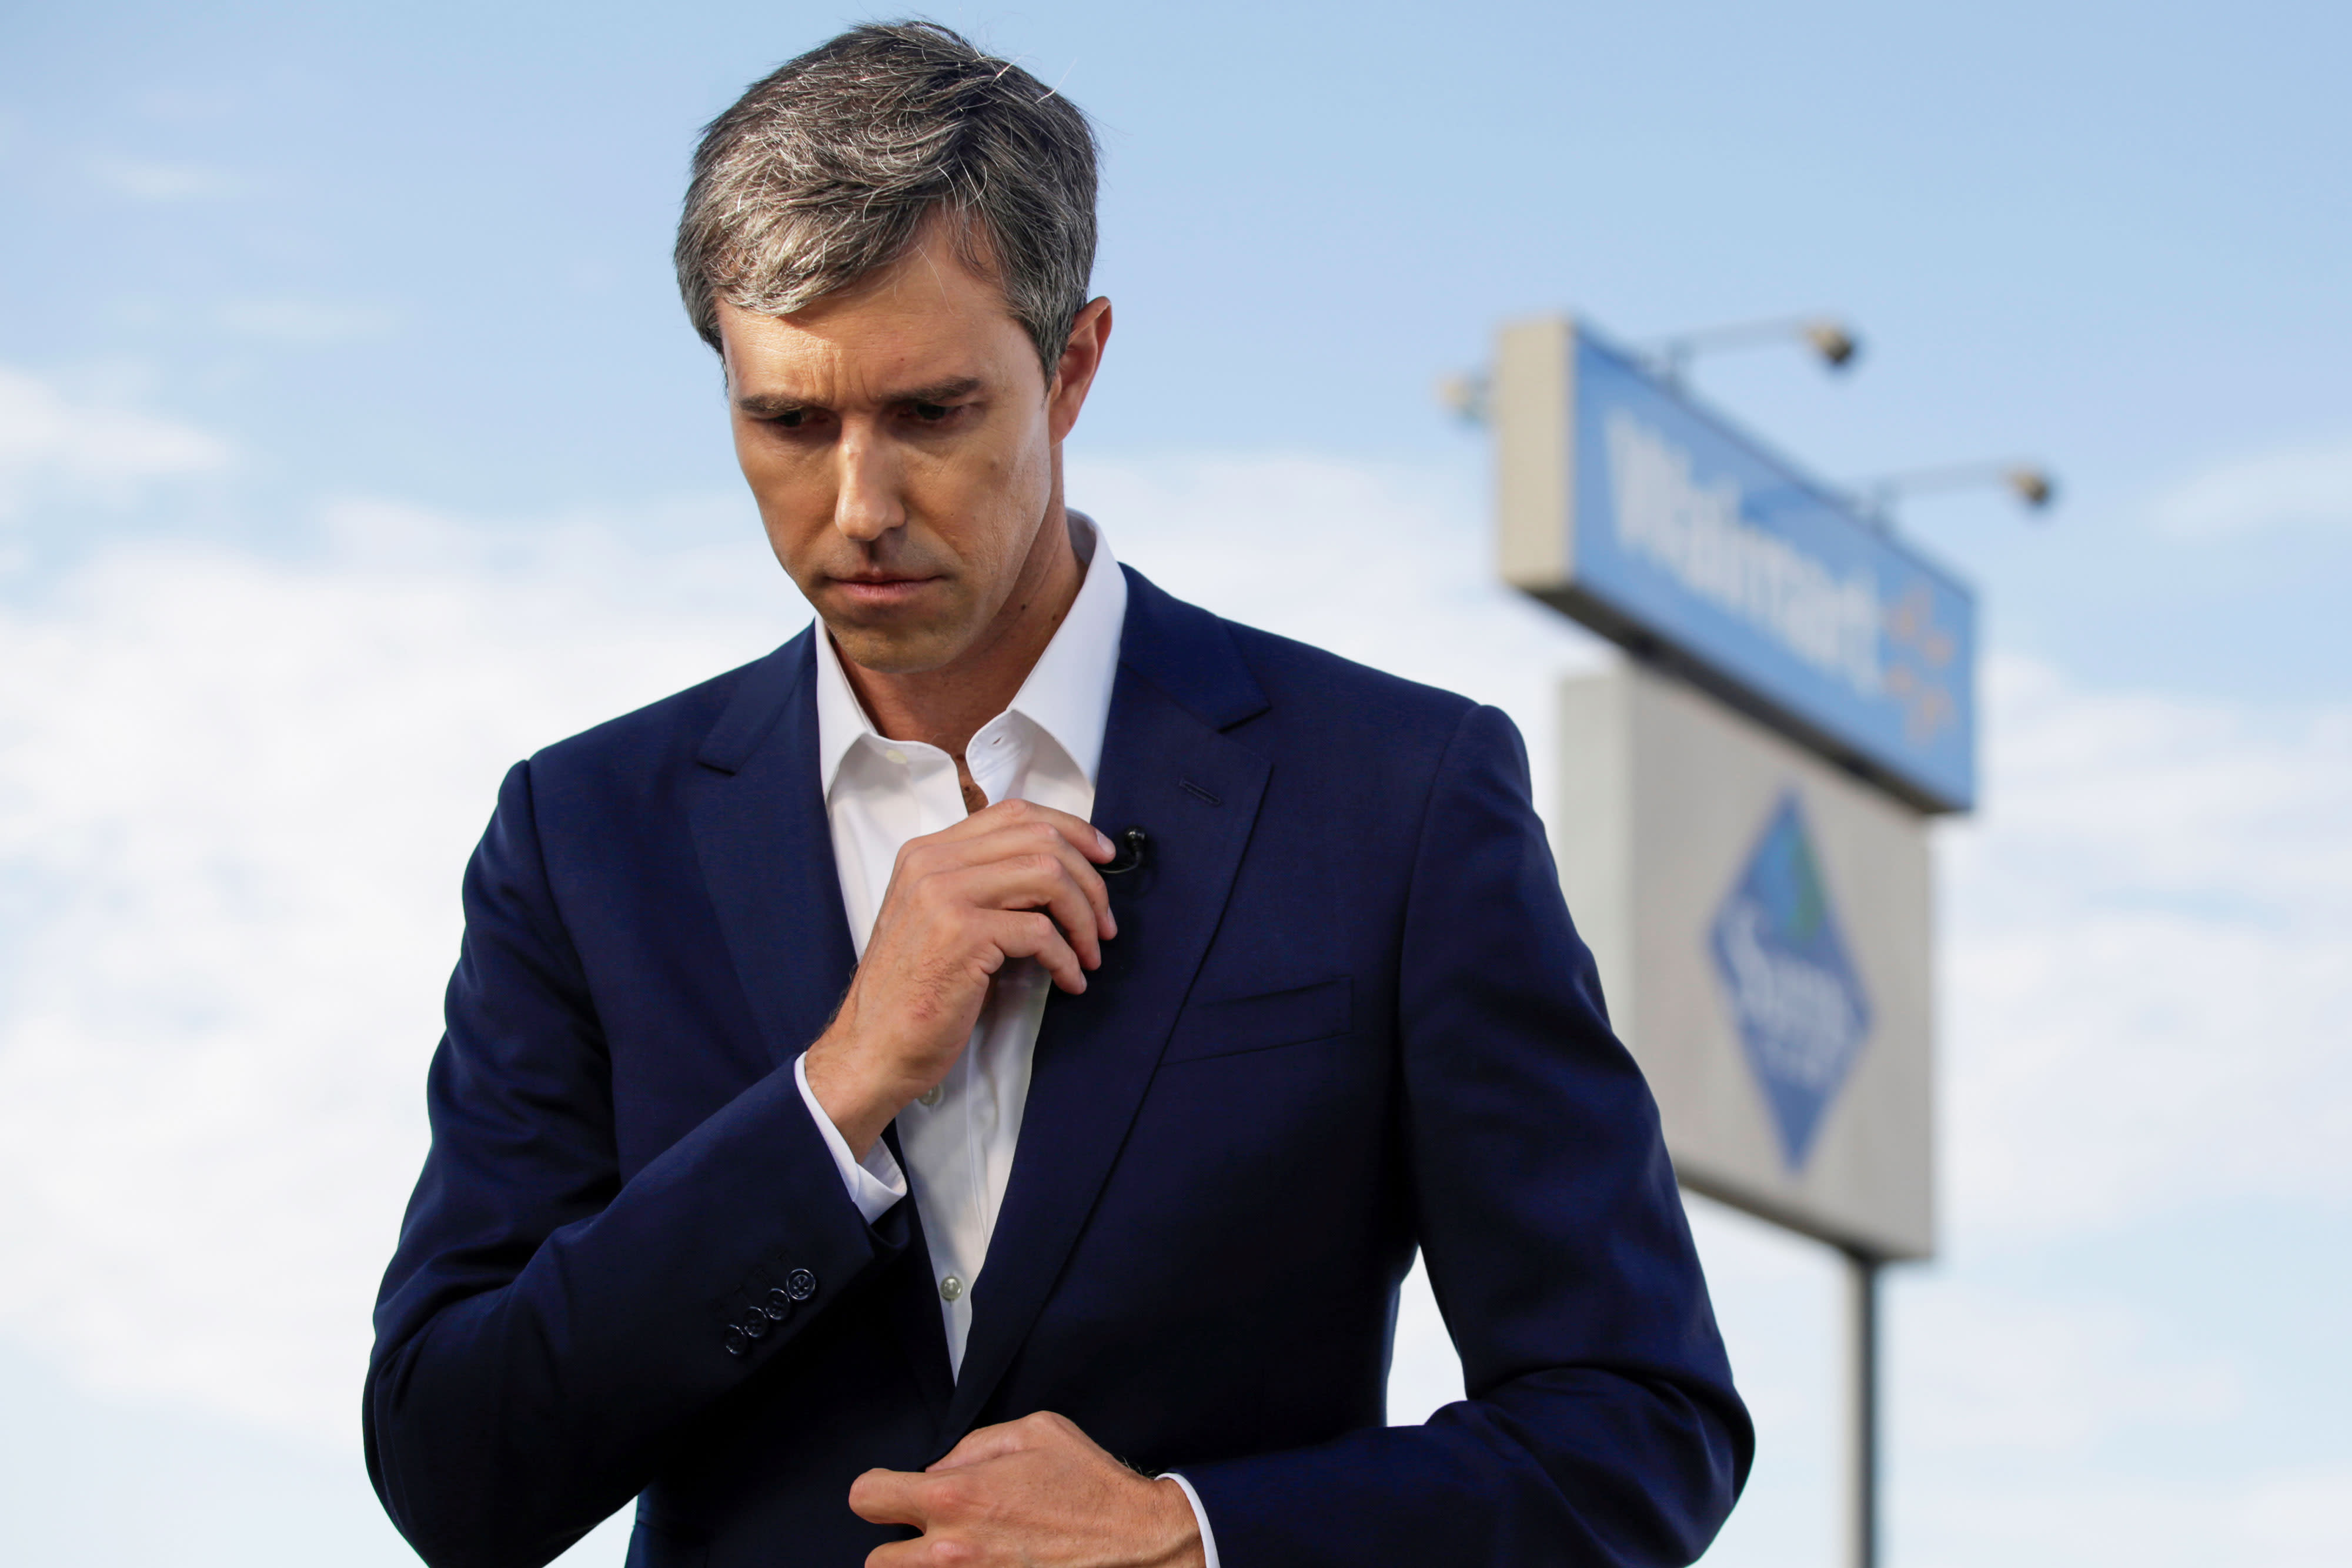 Beto O'Rourke goes after key immunity for social media companies if they allow users to incite violence